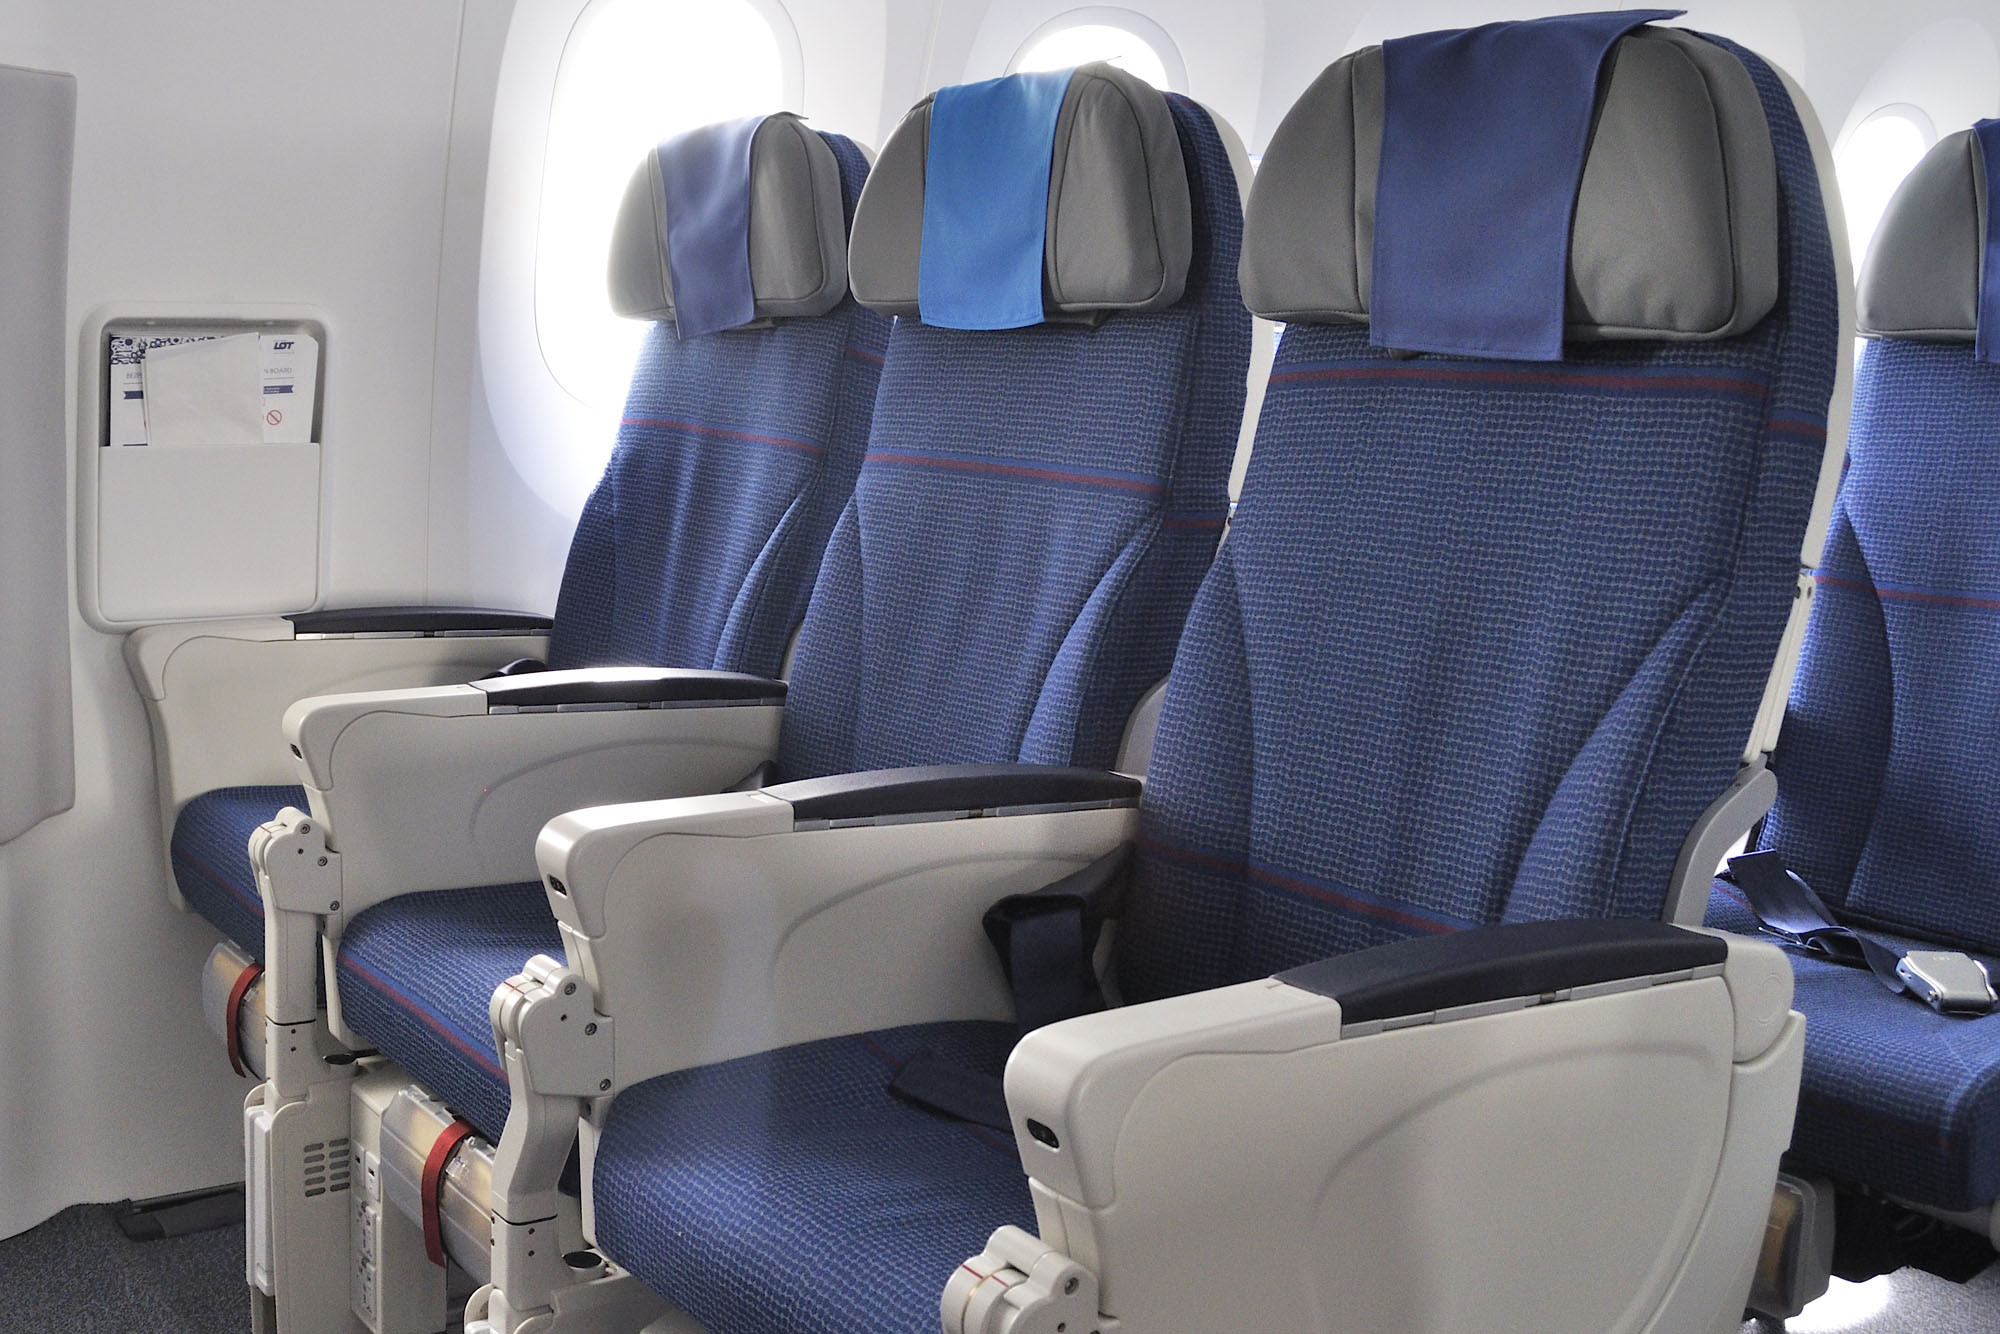 The Real Reason You Have to Straighten Your Airplane Seat